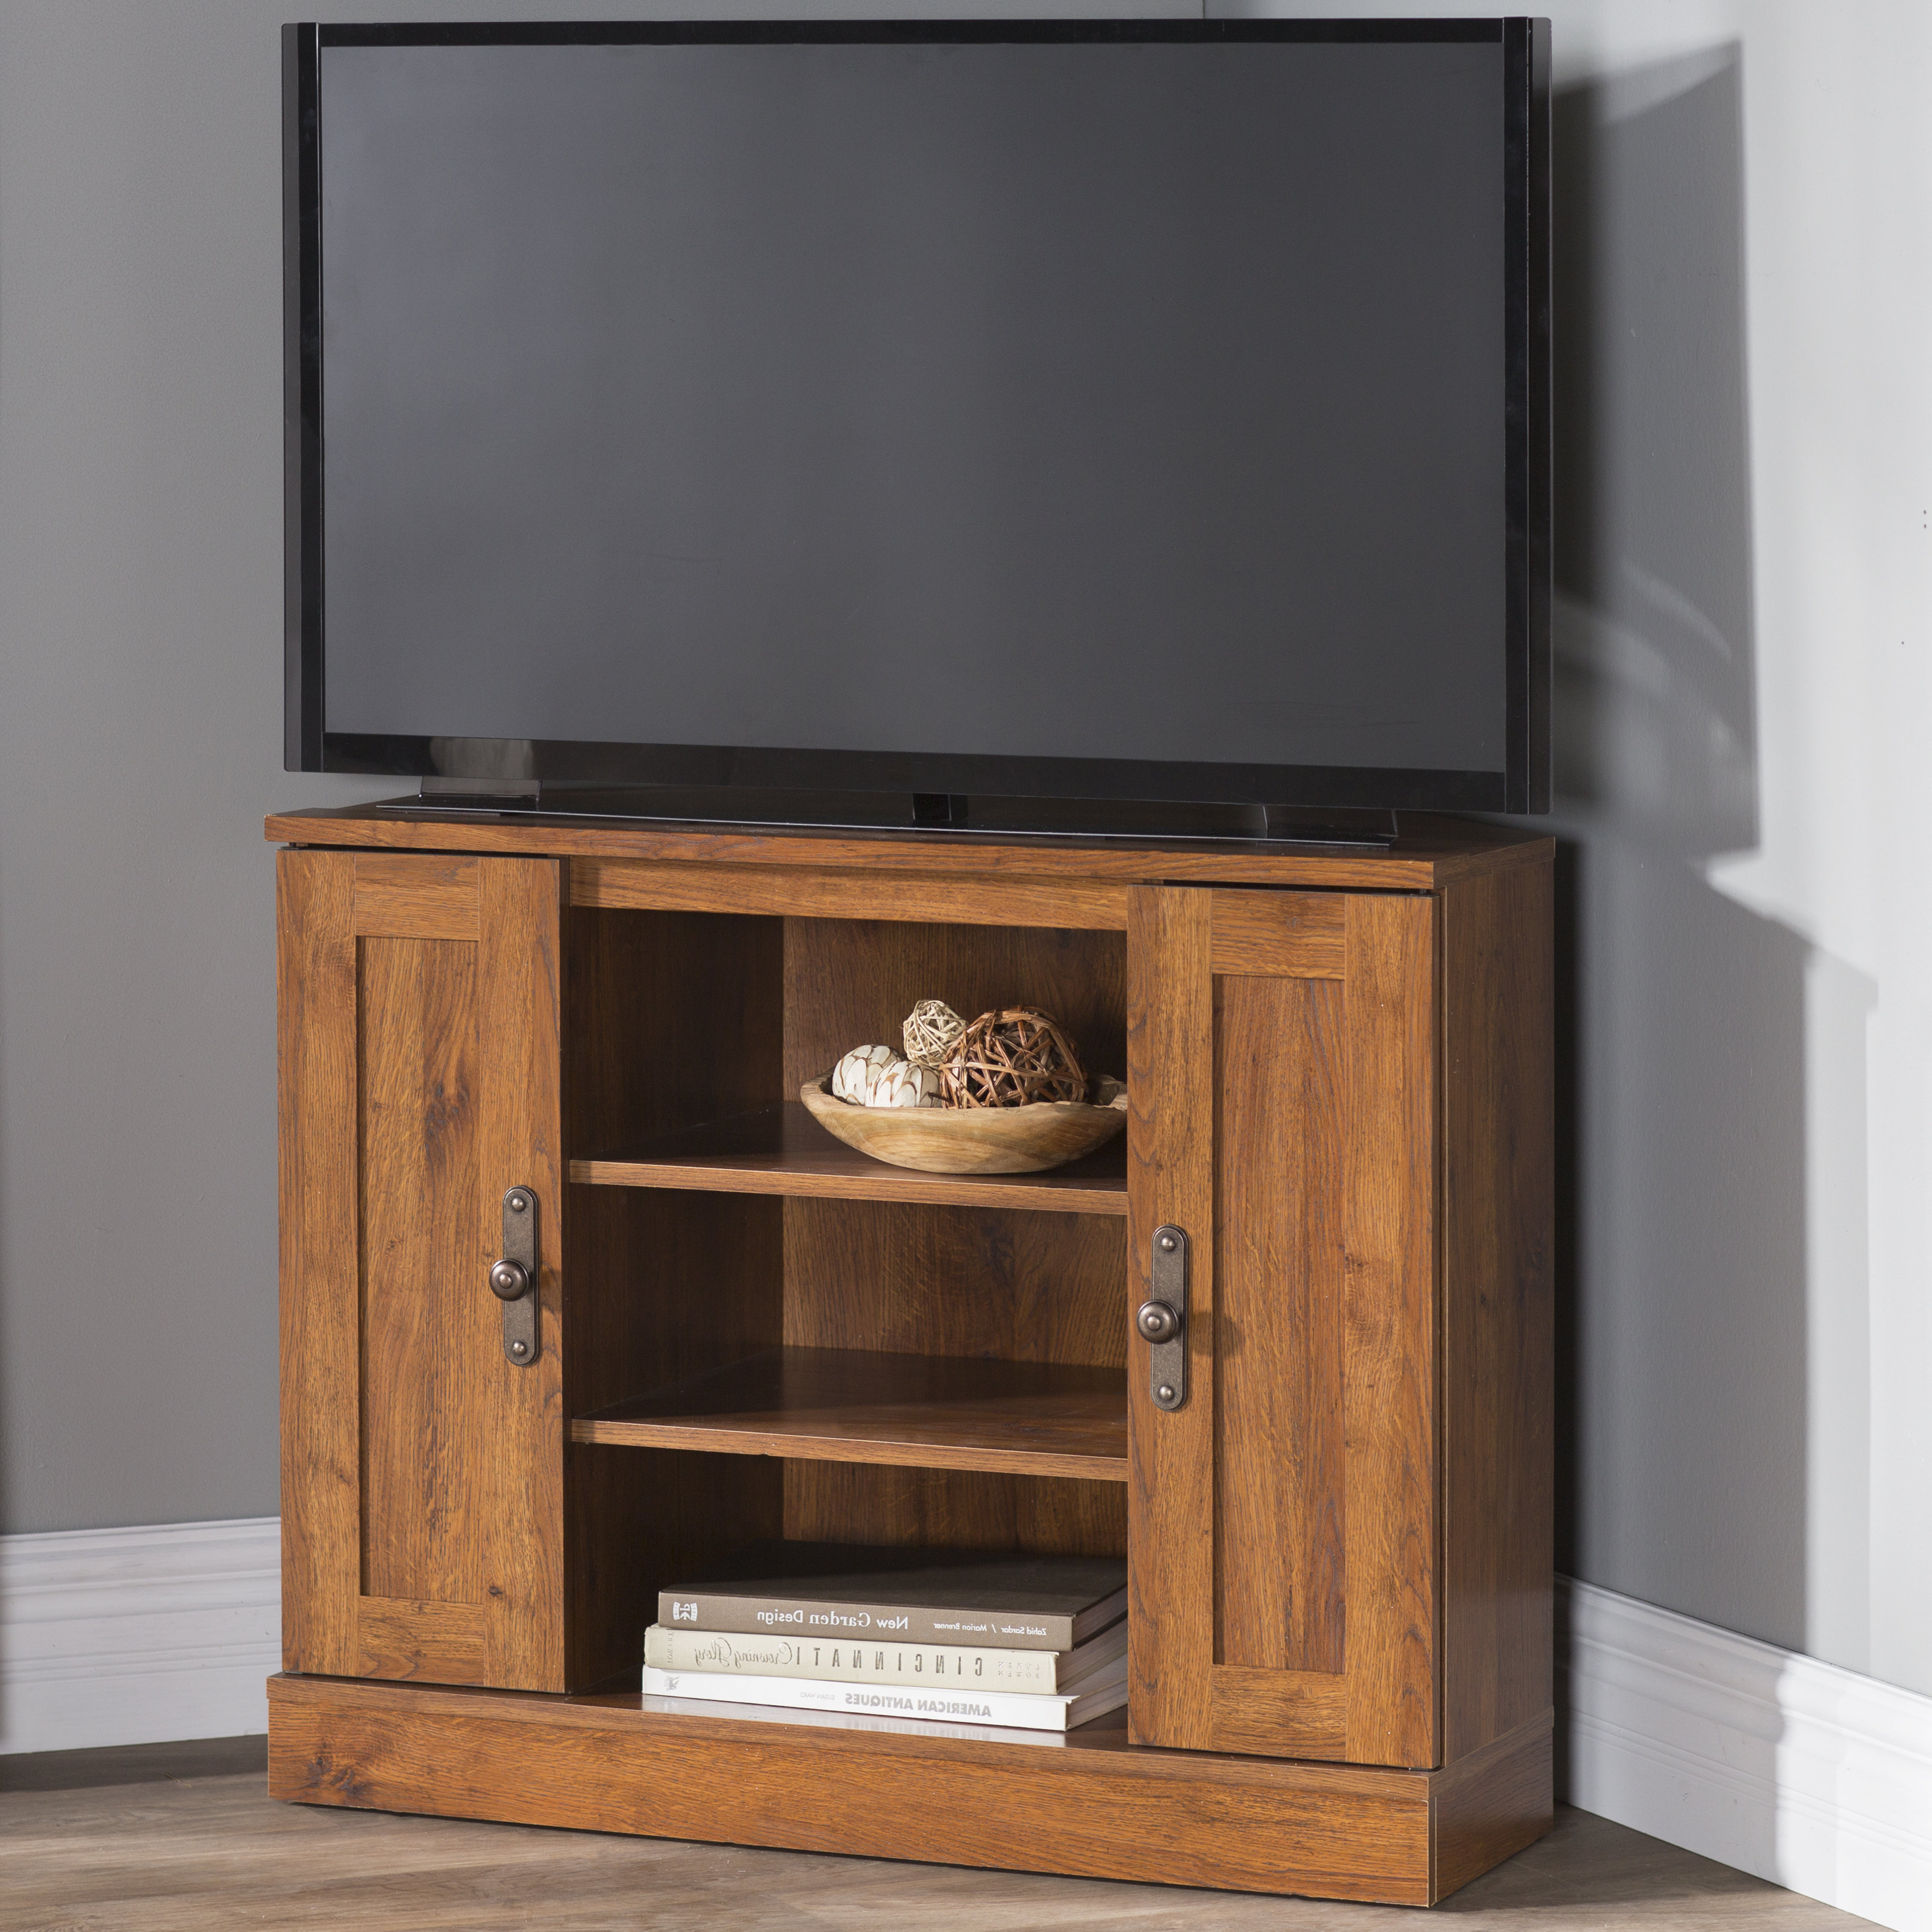 Wayfair With Regard To Newest Tv Stands With Drawers And Shelves (View 14 of 20)